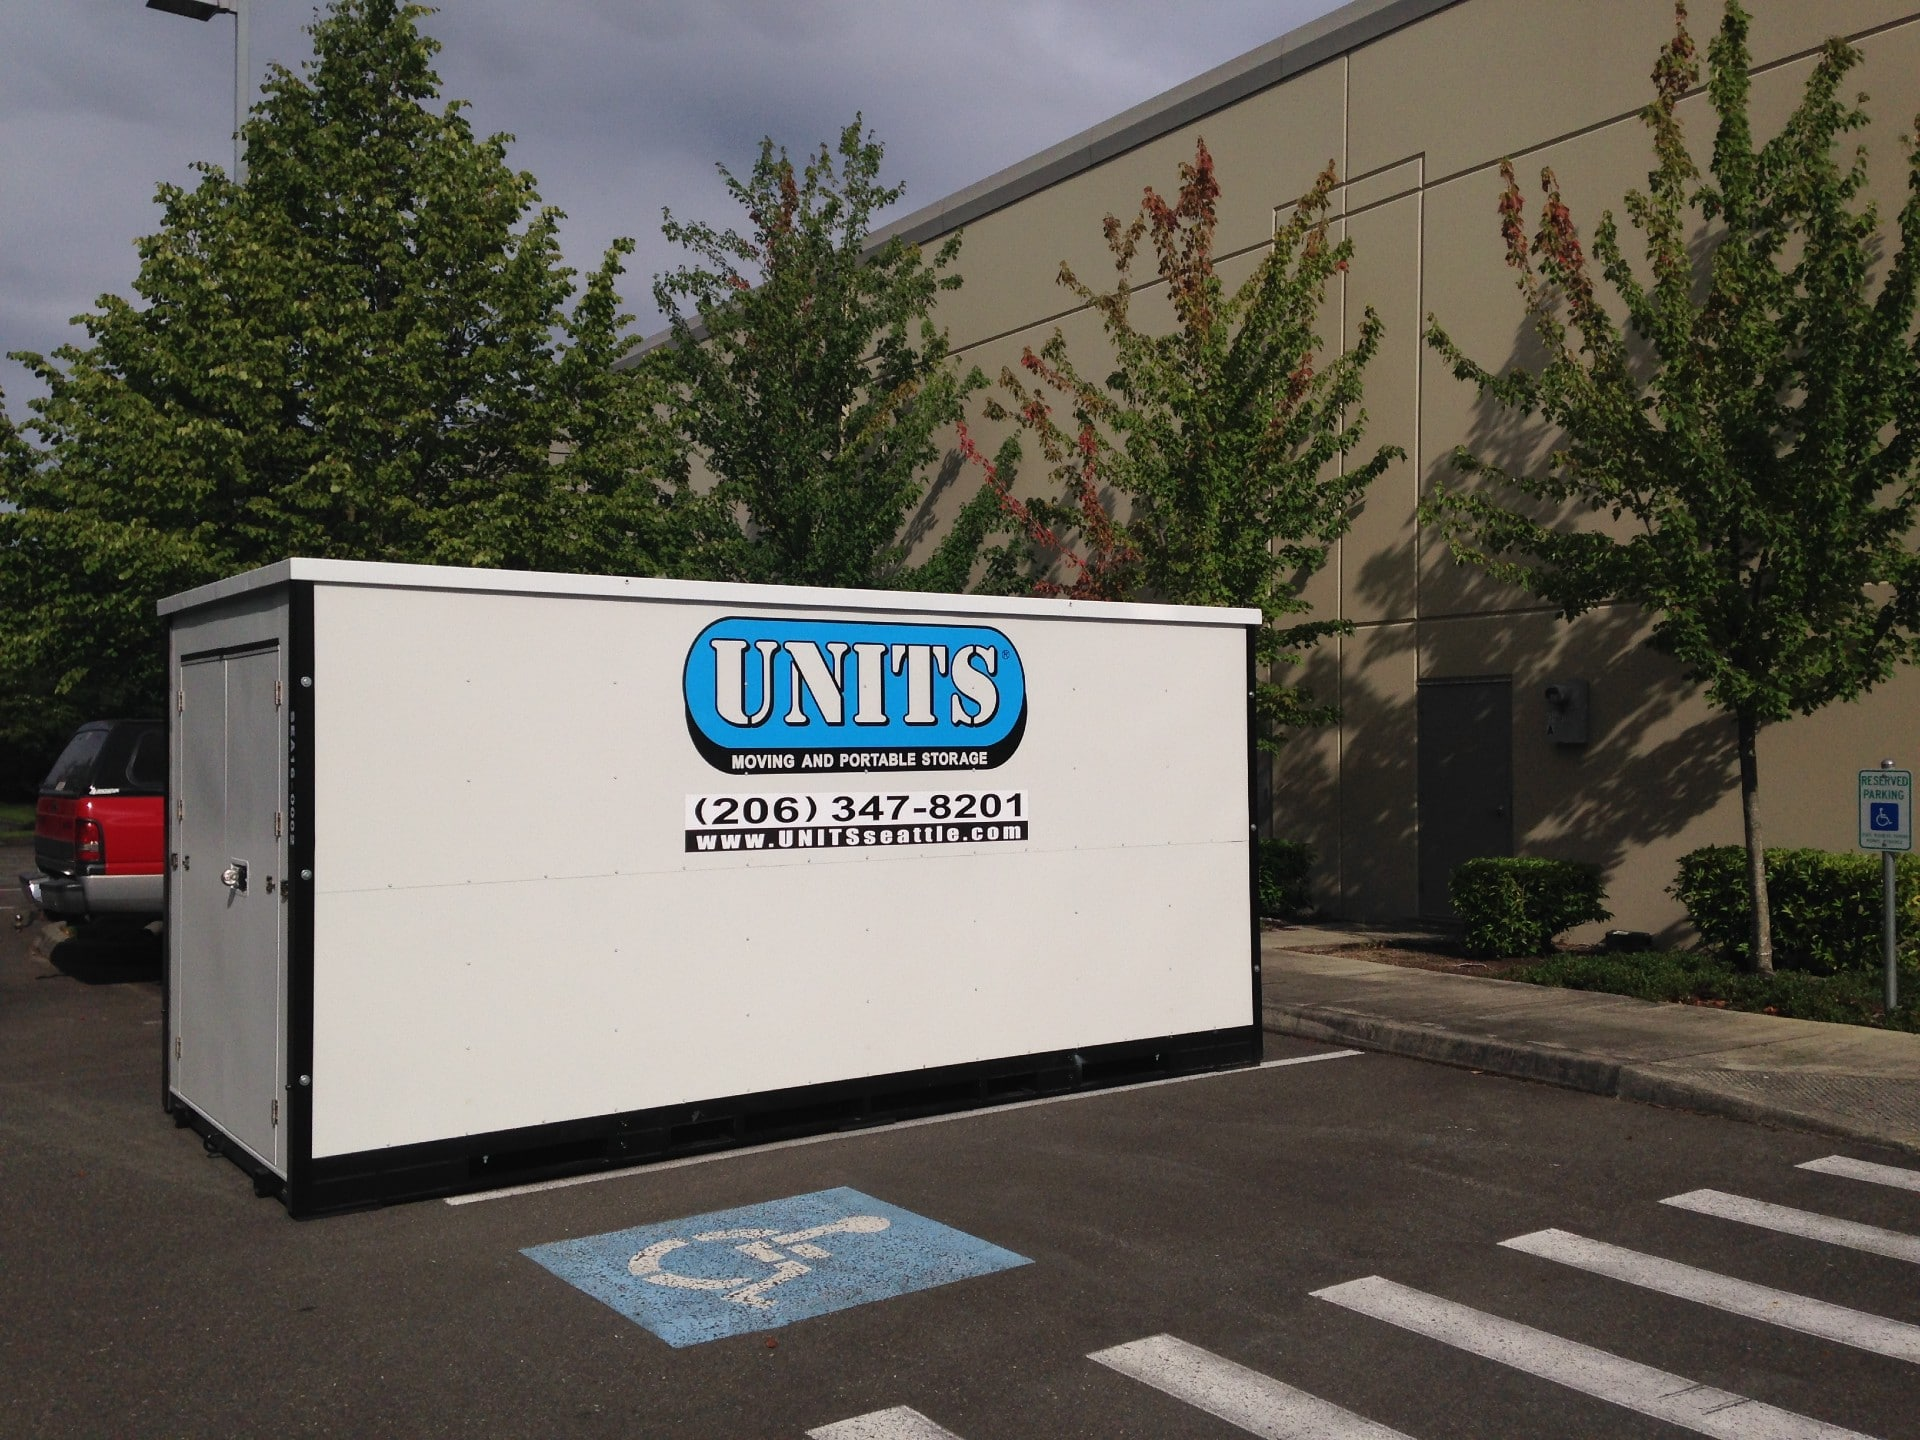 UNITS Local Ownership